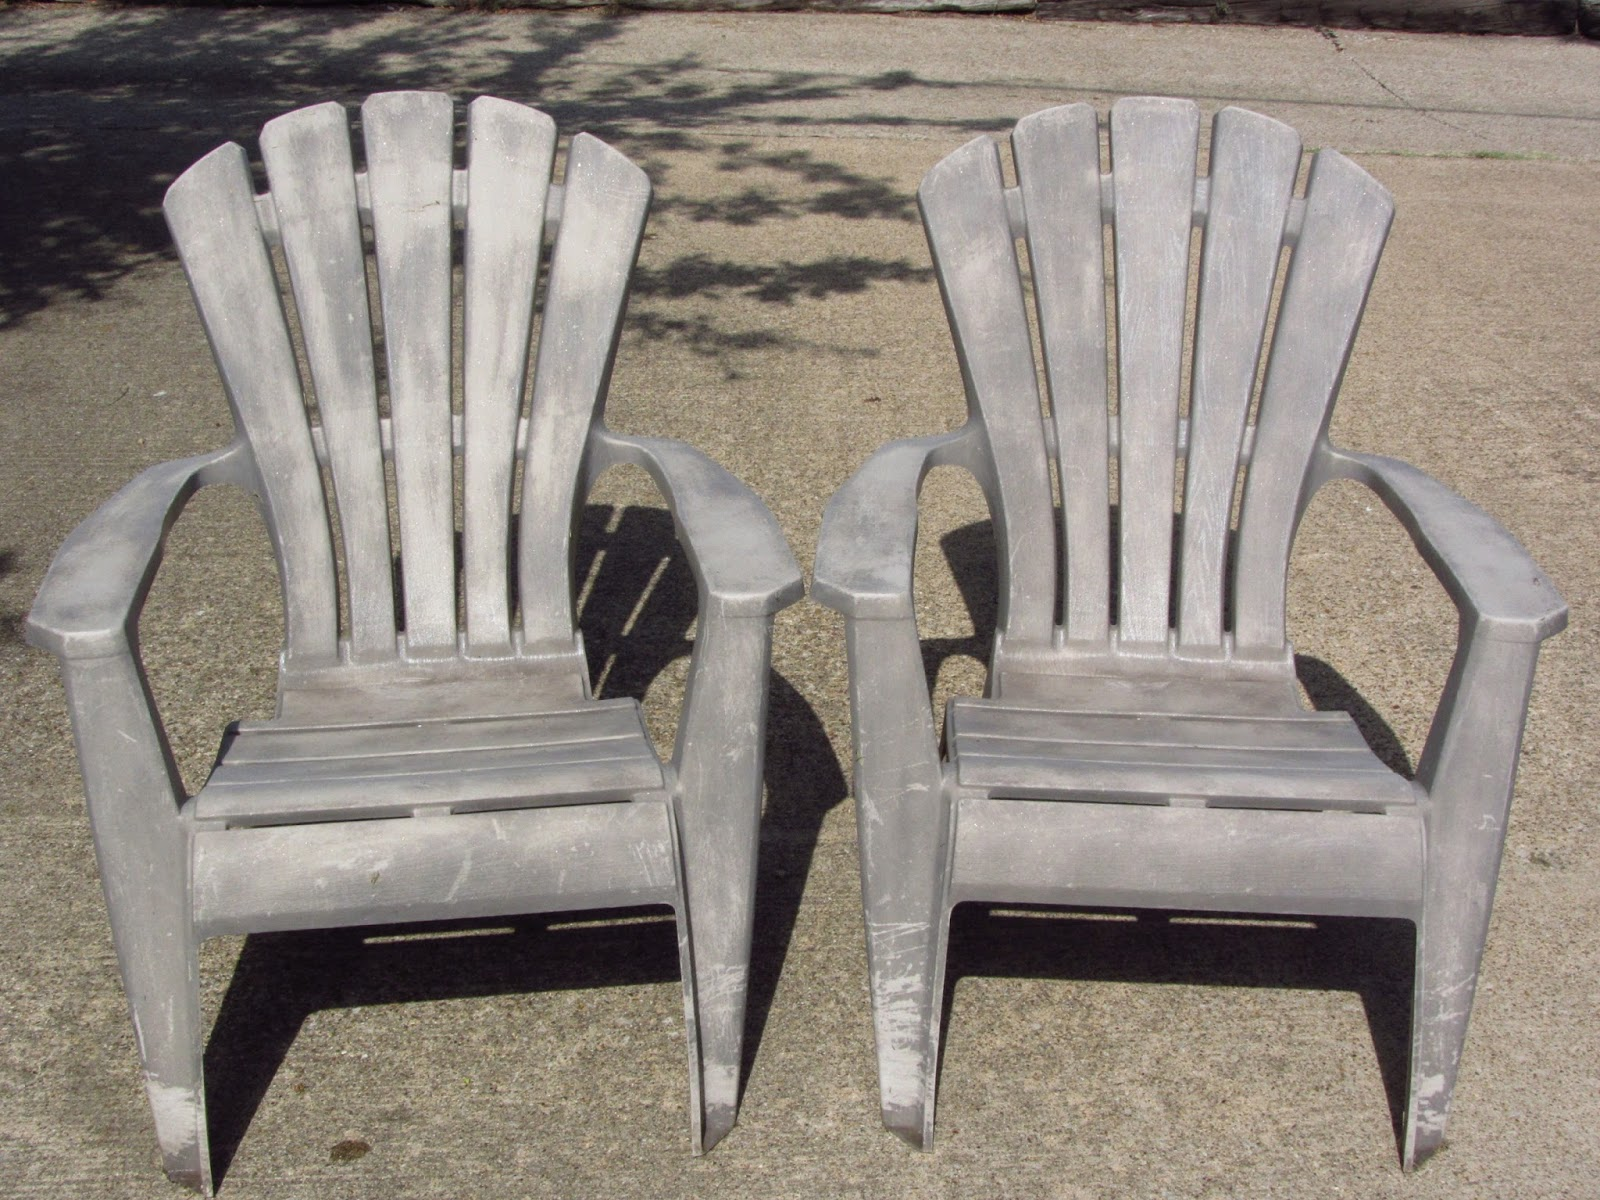 So Wonderfully plex Painting Plastic Outdoor Chairs